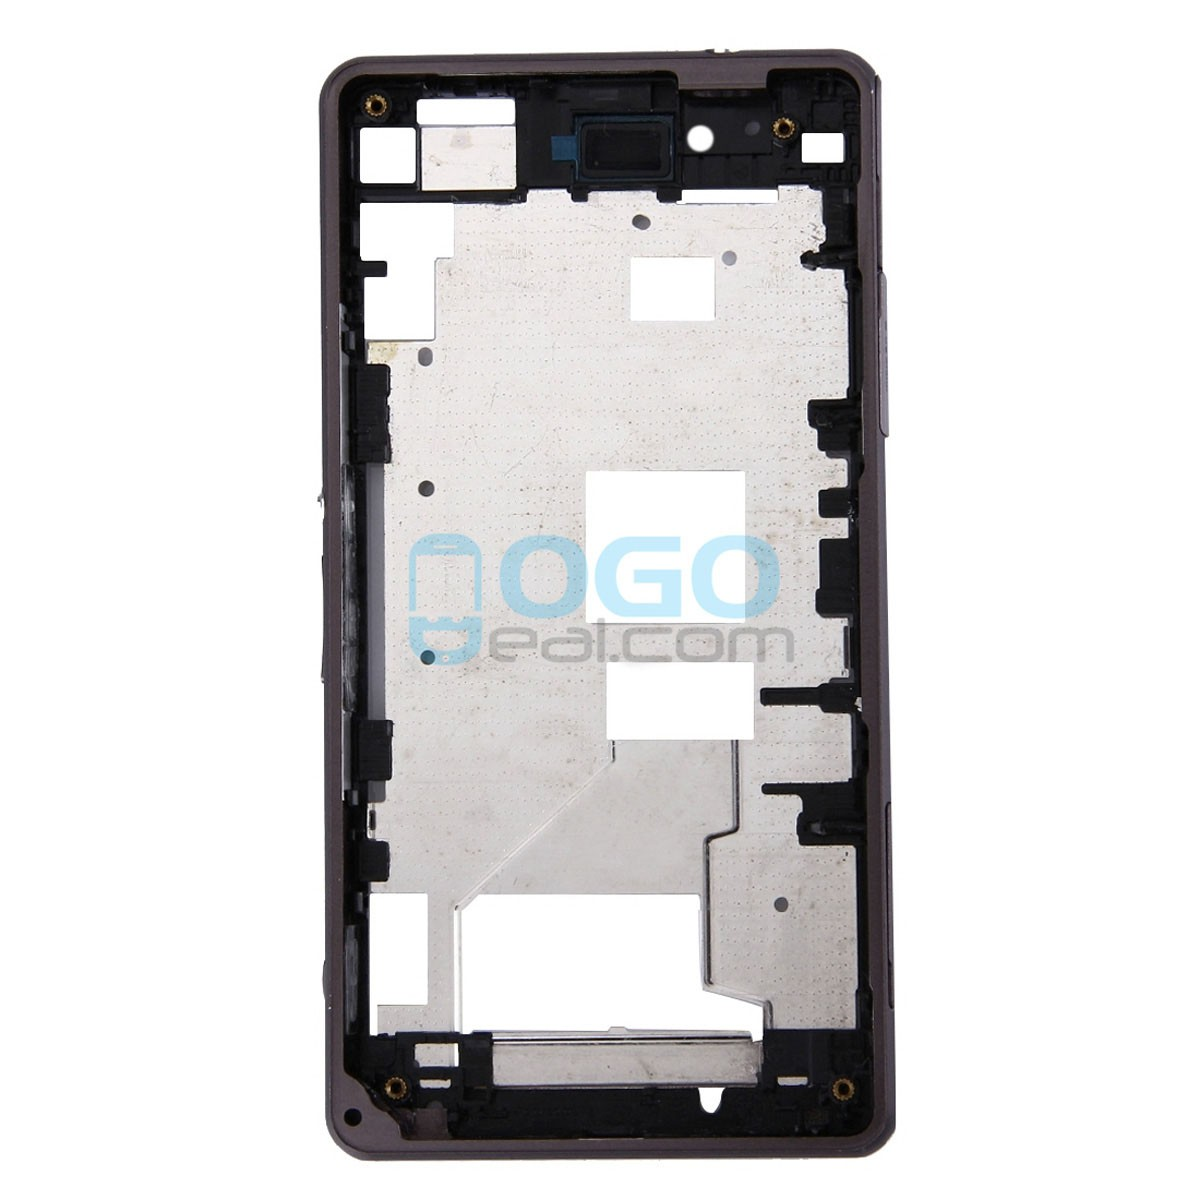 Factory Wholesale Front Housing Bezel Replacement For Sony Xperia Z1 Baterai Compact Mini Black Lightbox Moreview